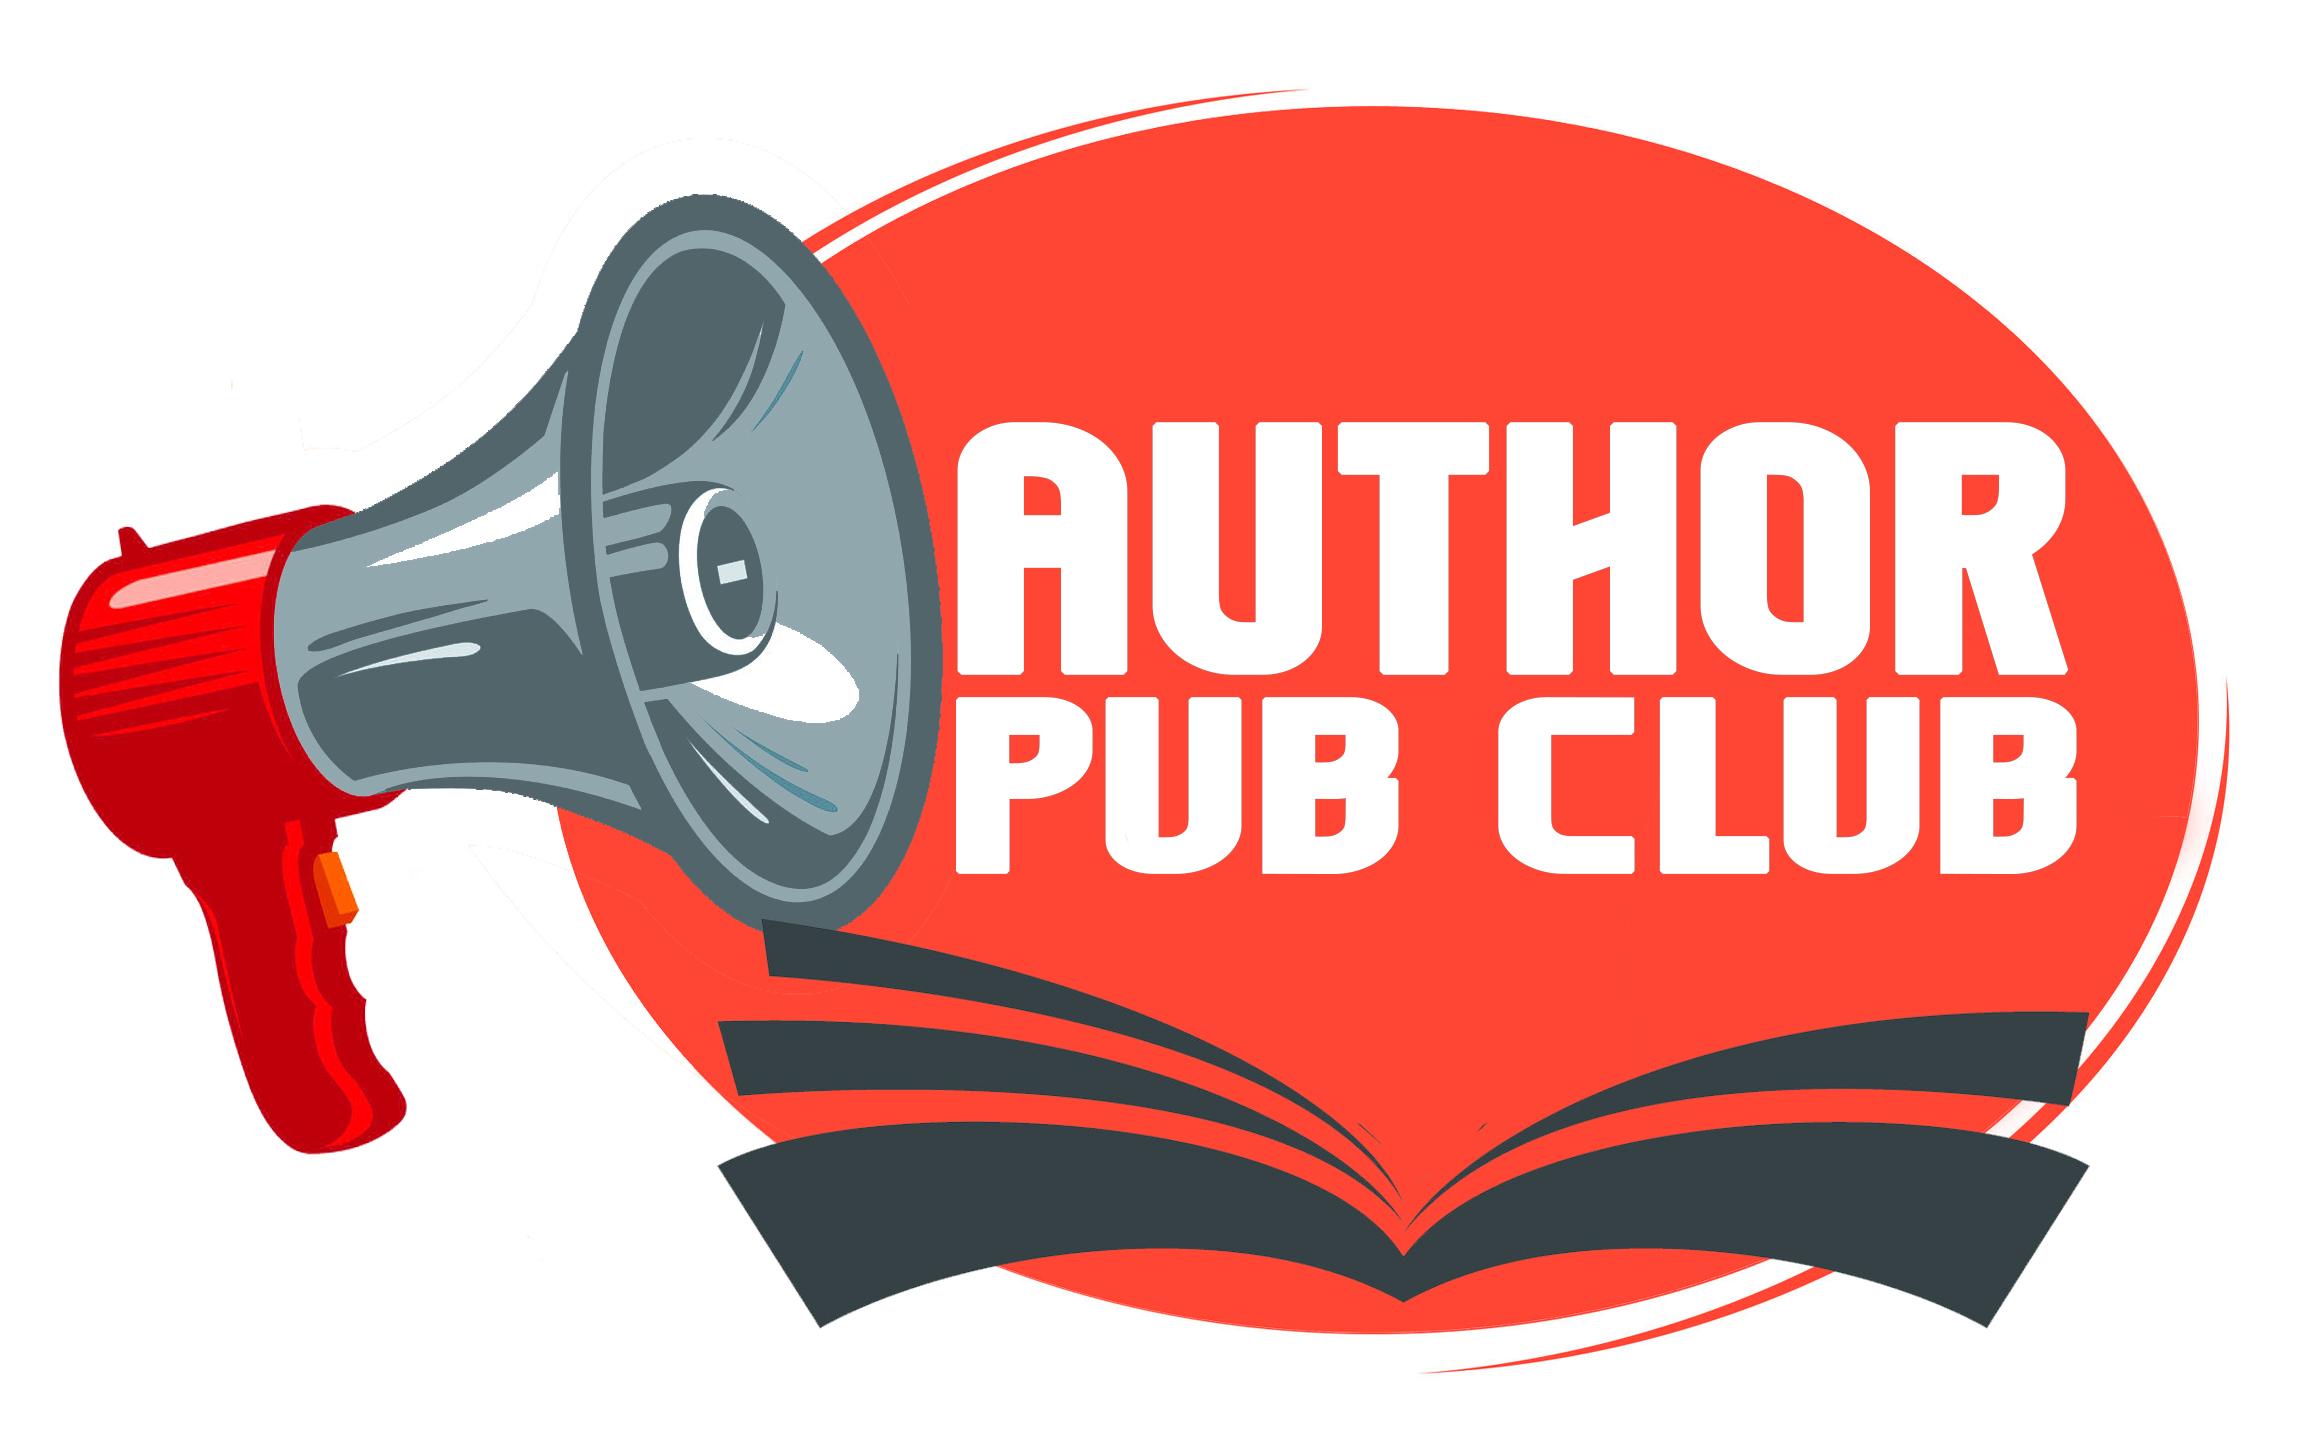 Author Pub Club